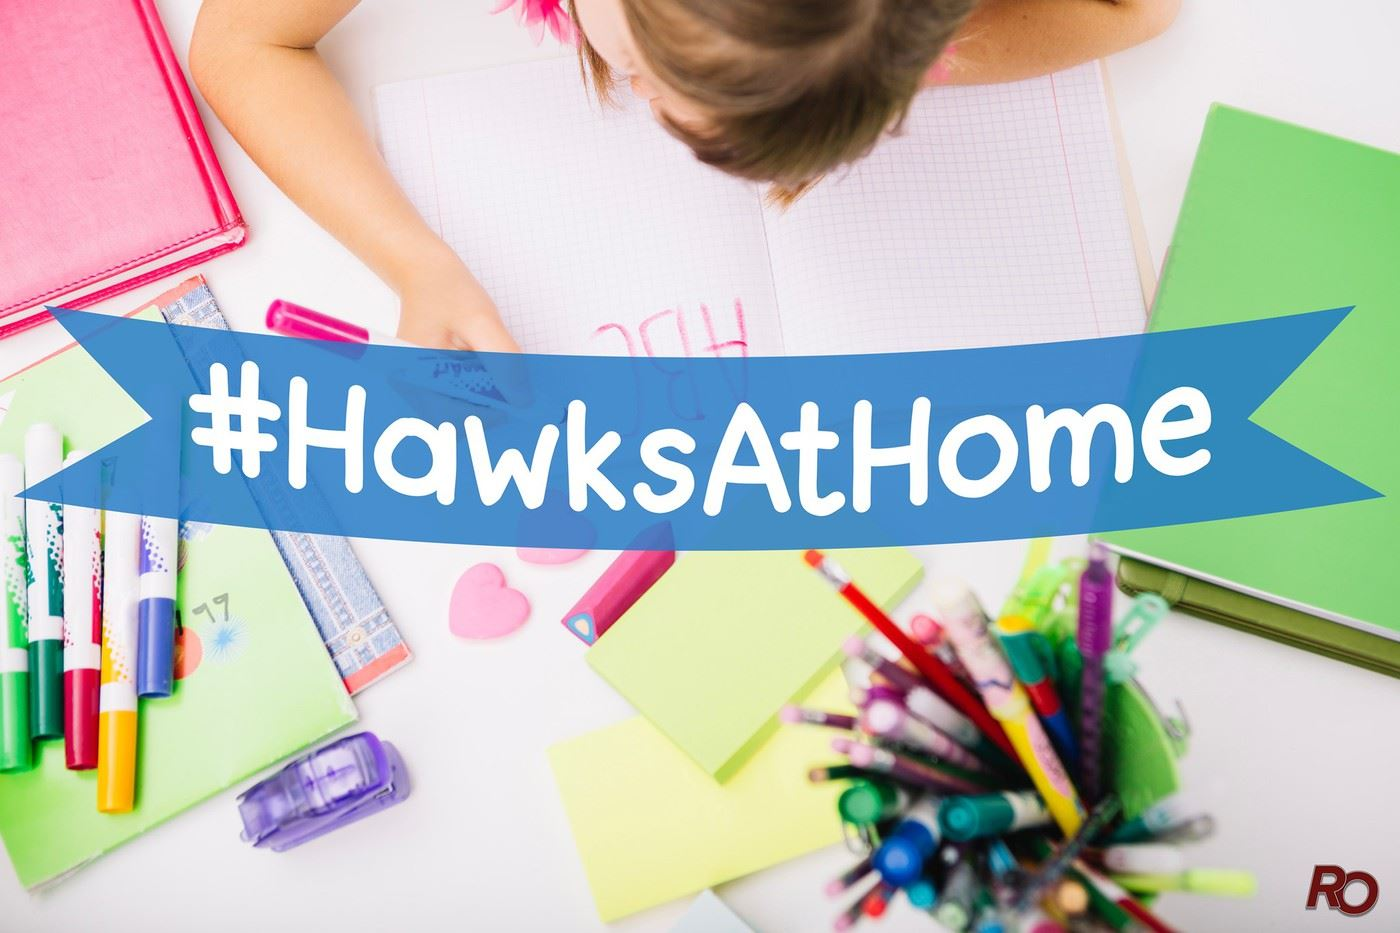 Child coloring with #HawksAtHome